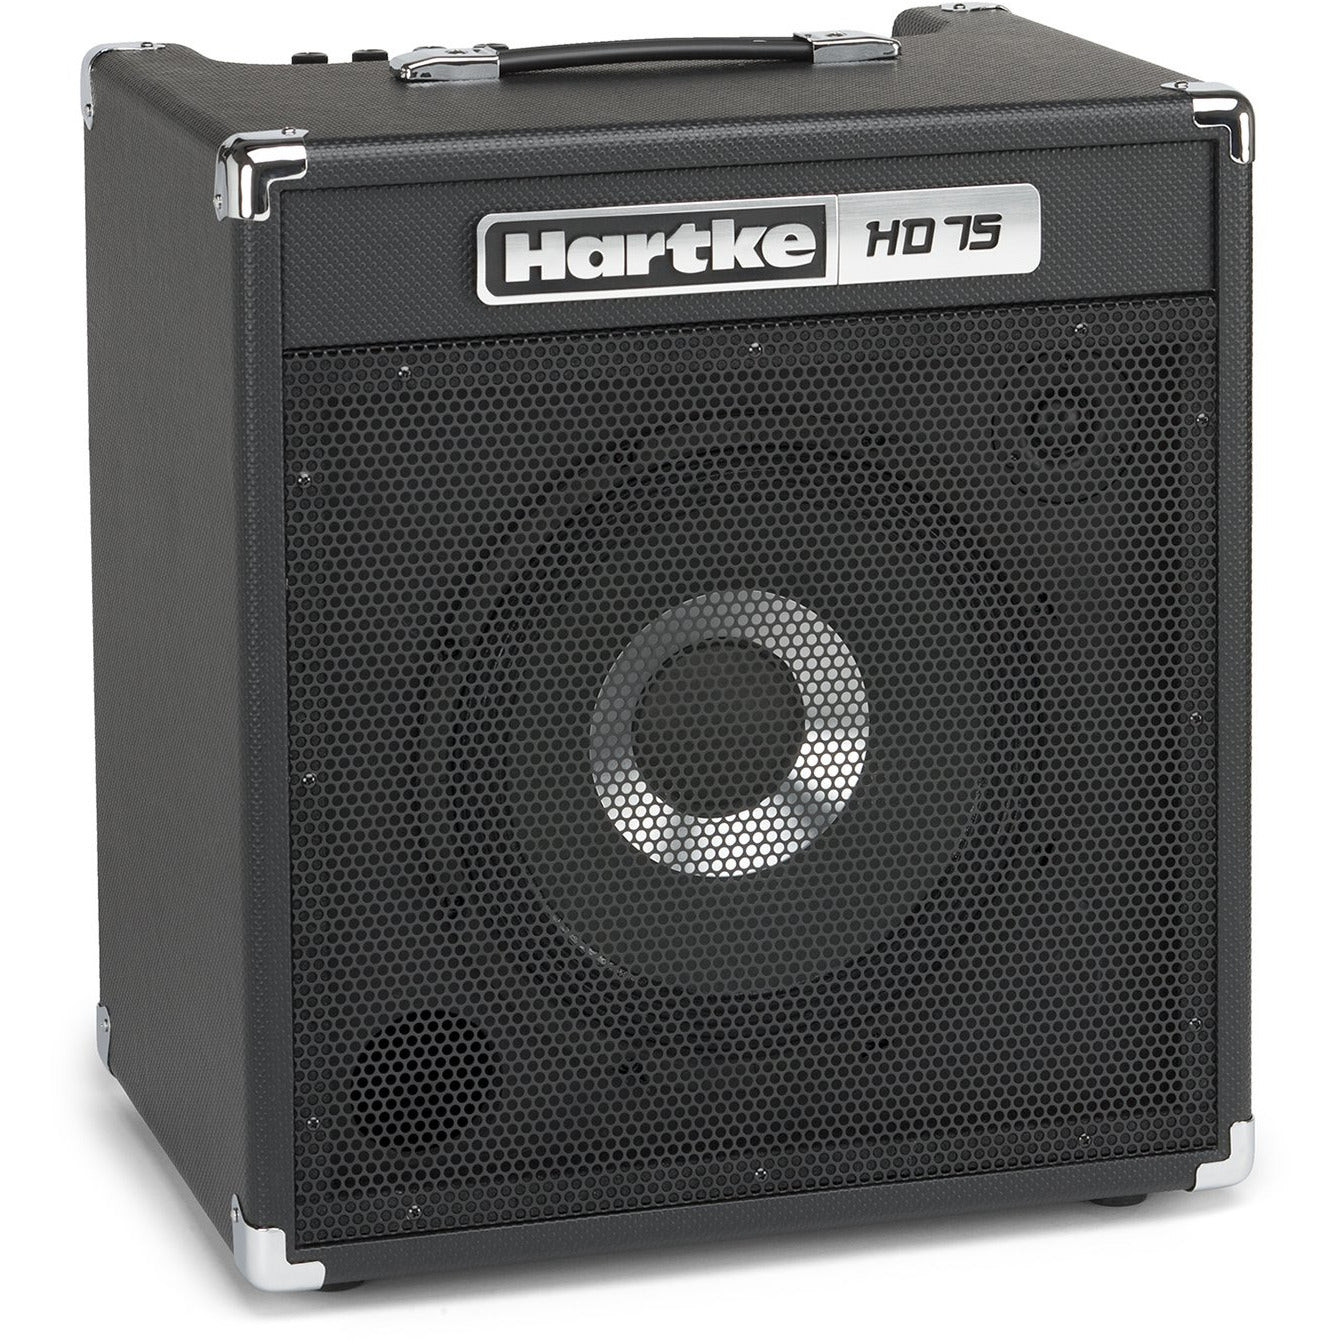 "Hartke HD75 75 watts,12"" HyDrive paper and aluminum cone driver"